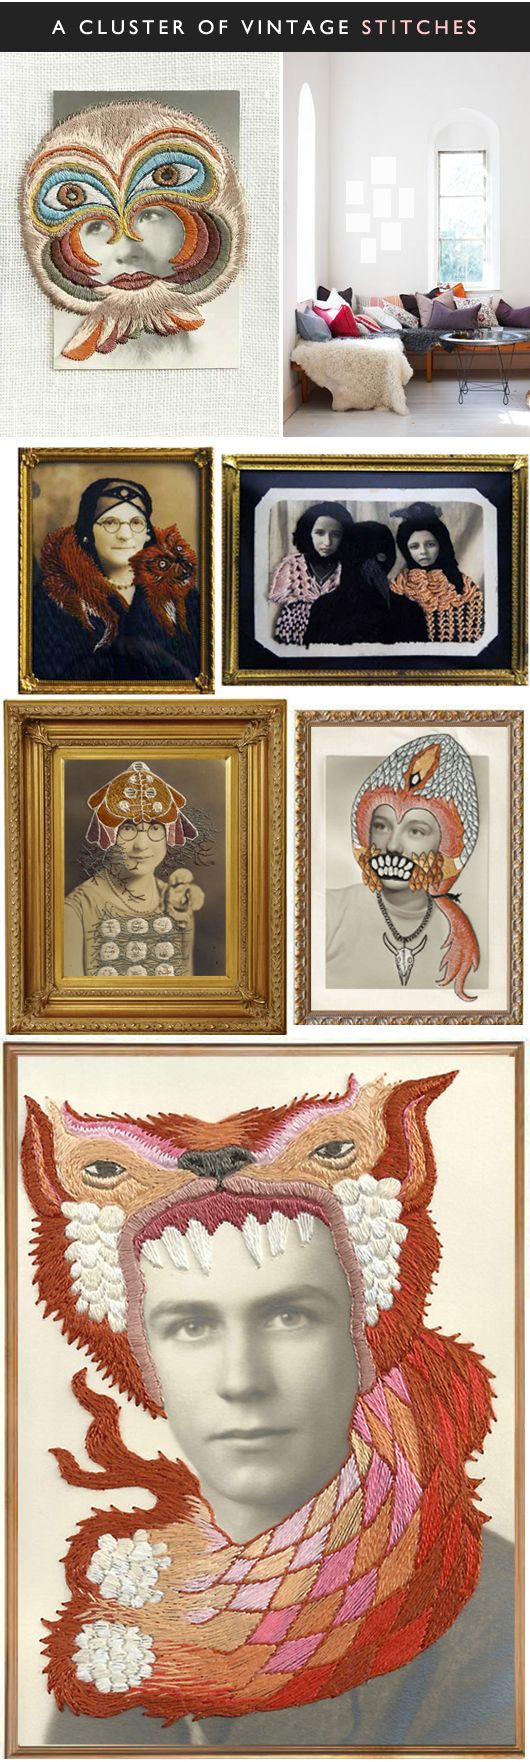 """the work of american artist stacey page. found photographs, with just the perfect amount of bizarrely beautiful embroidery. now all you need is a bunch of vintage gold frames, and you'll be all set to hang this stunning little cluster!"" via THE JEALOUS CURATOR: ART GOES HERE via sfgirlbybay"